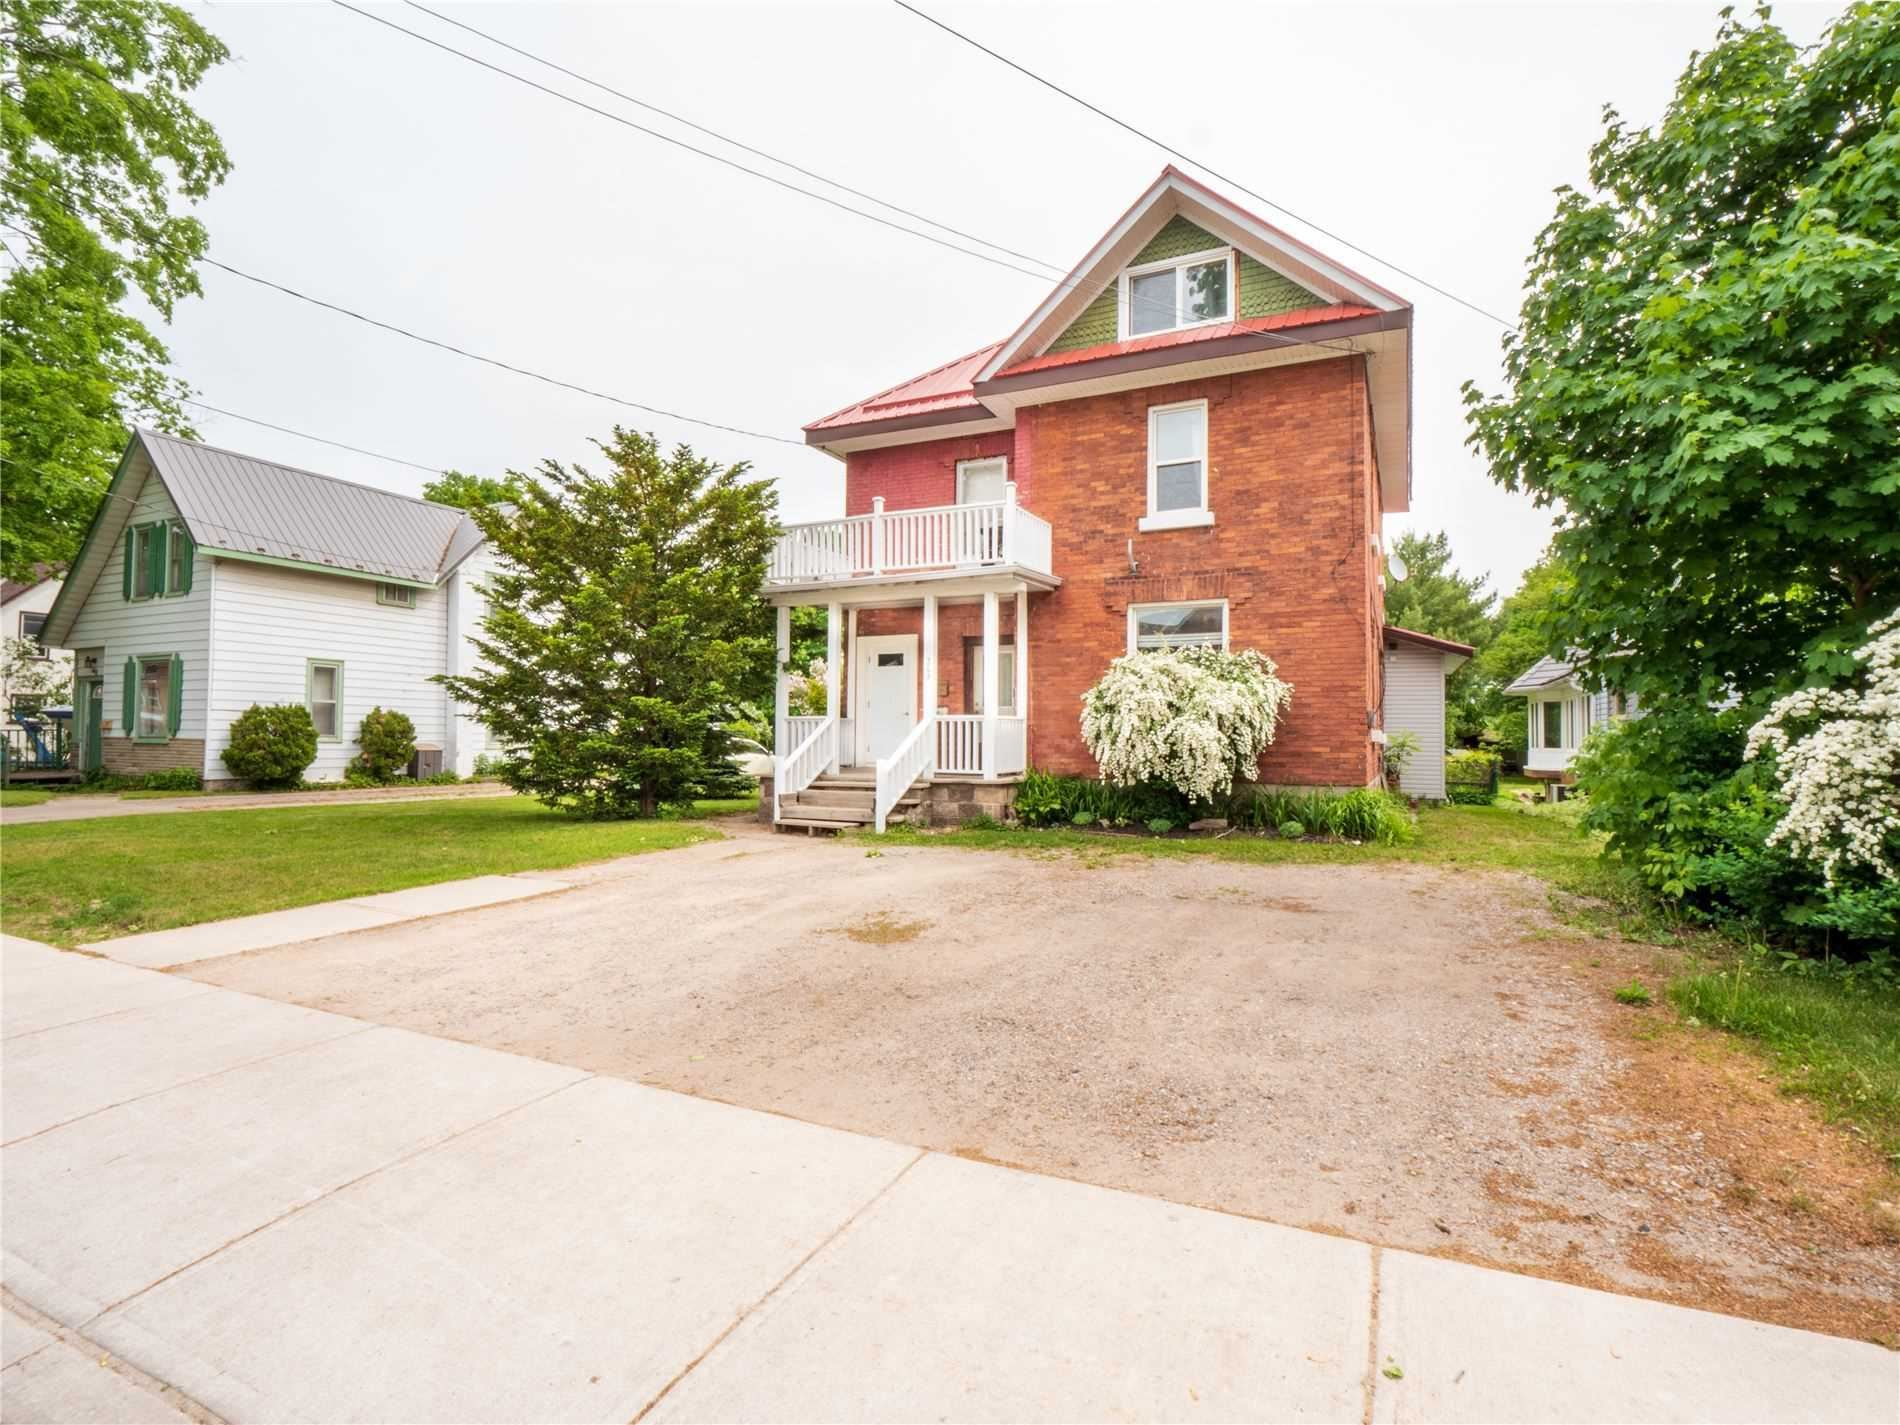 349 Queen St, Midland, ON L4R 3H6 - MLS#: S5256574